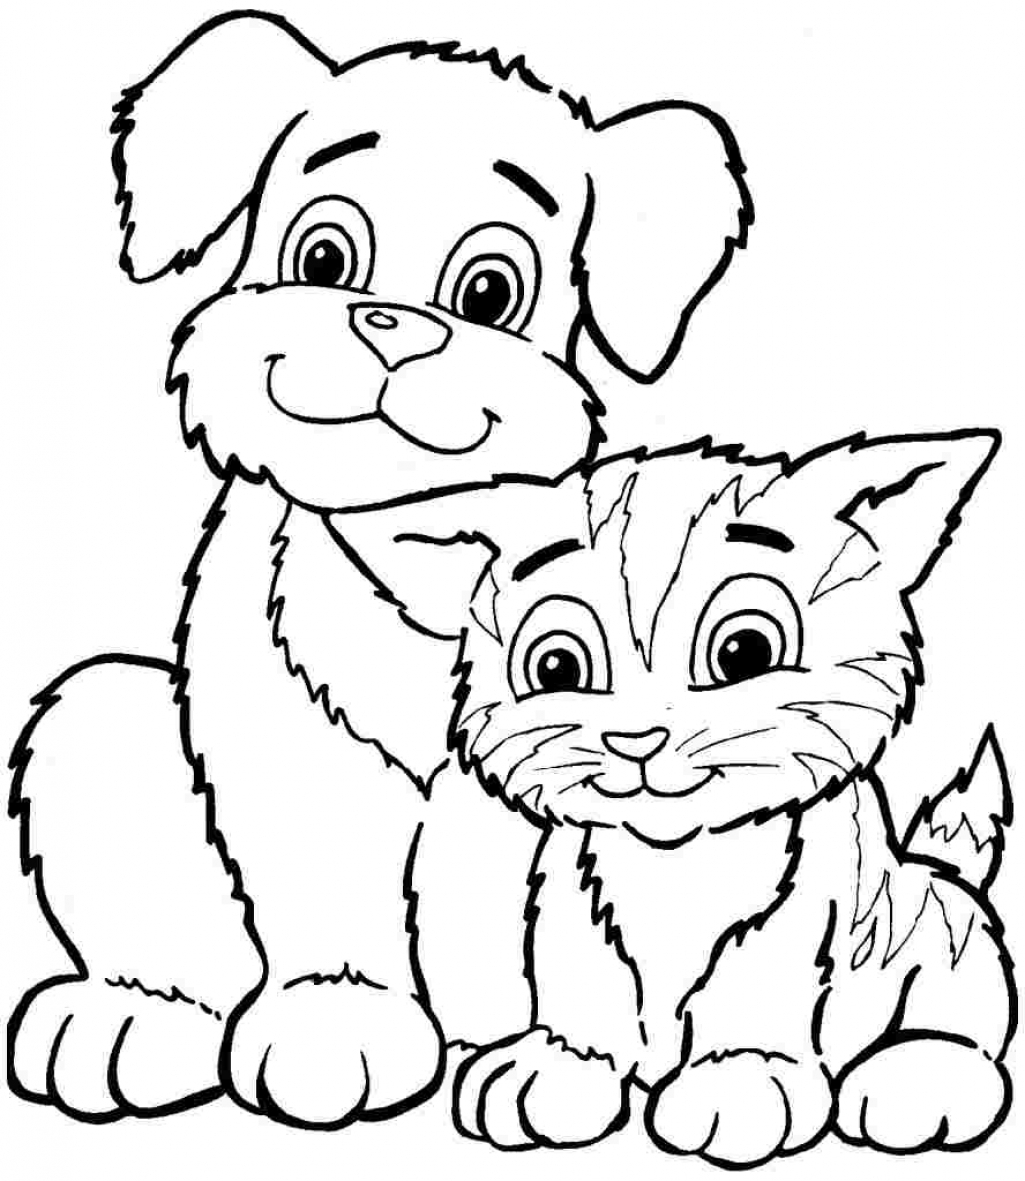 1025x1181 Coloring Pages Printable. Awesome Gallery Free Printable Coloring